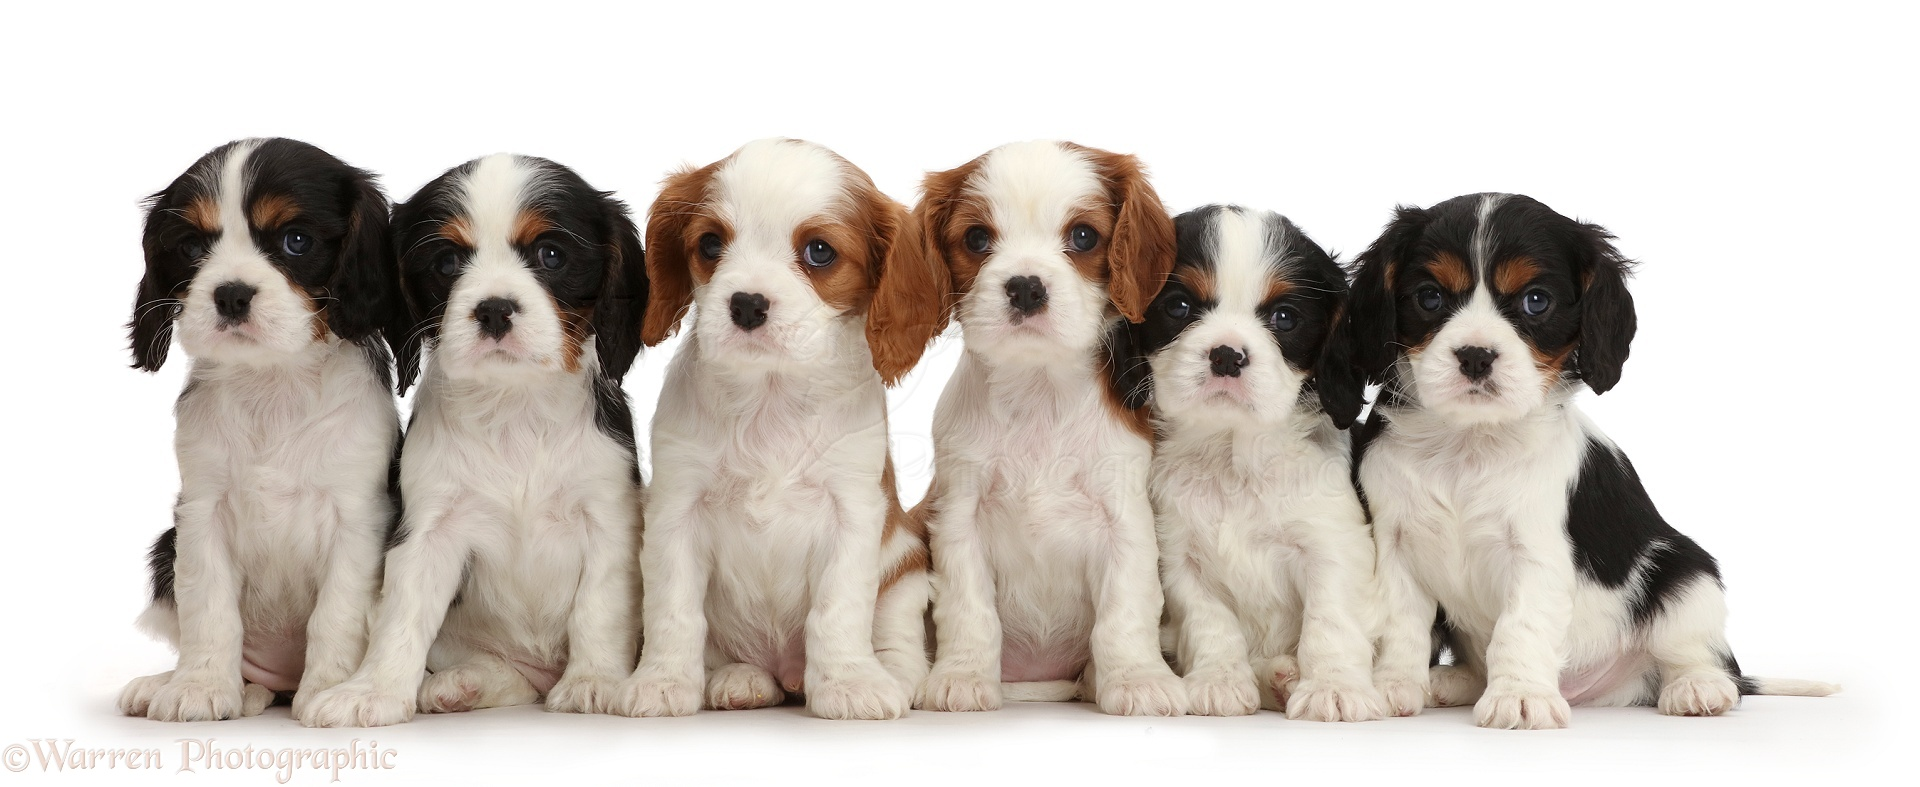 Dogs: Six Cavalier puppies sitting in a row photo WP43142